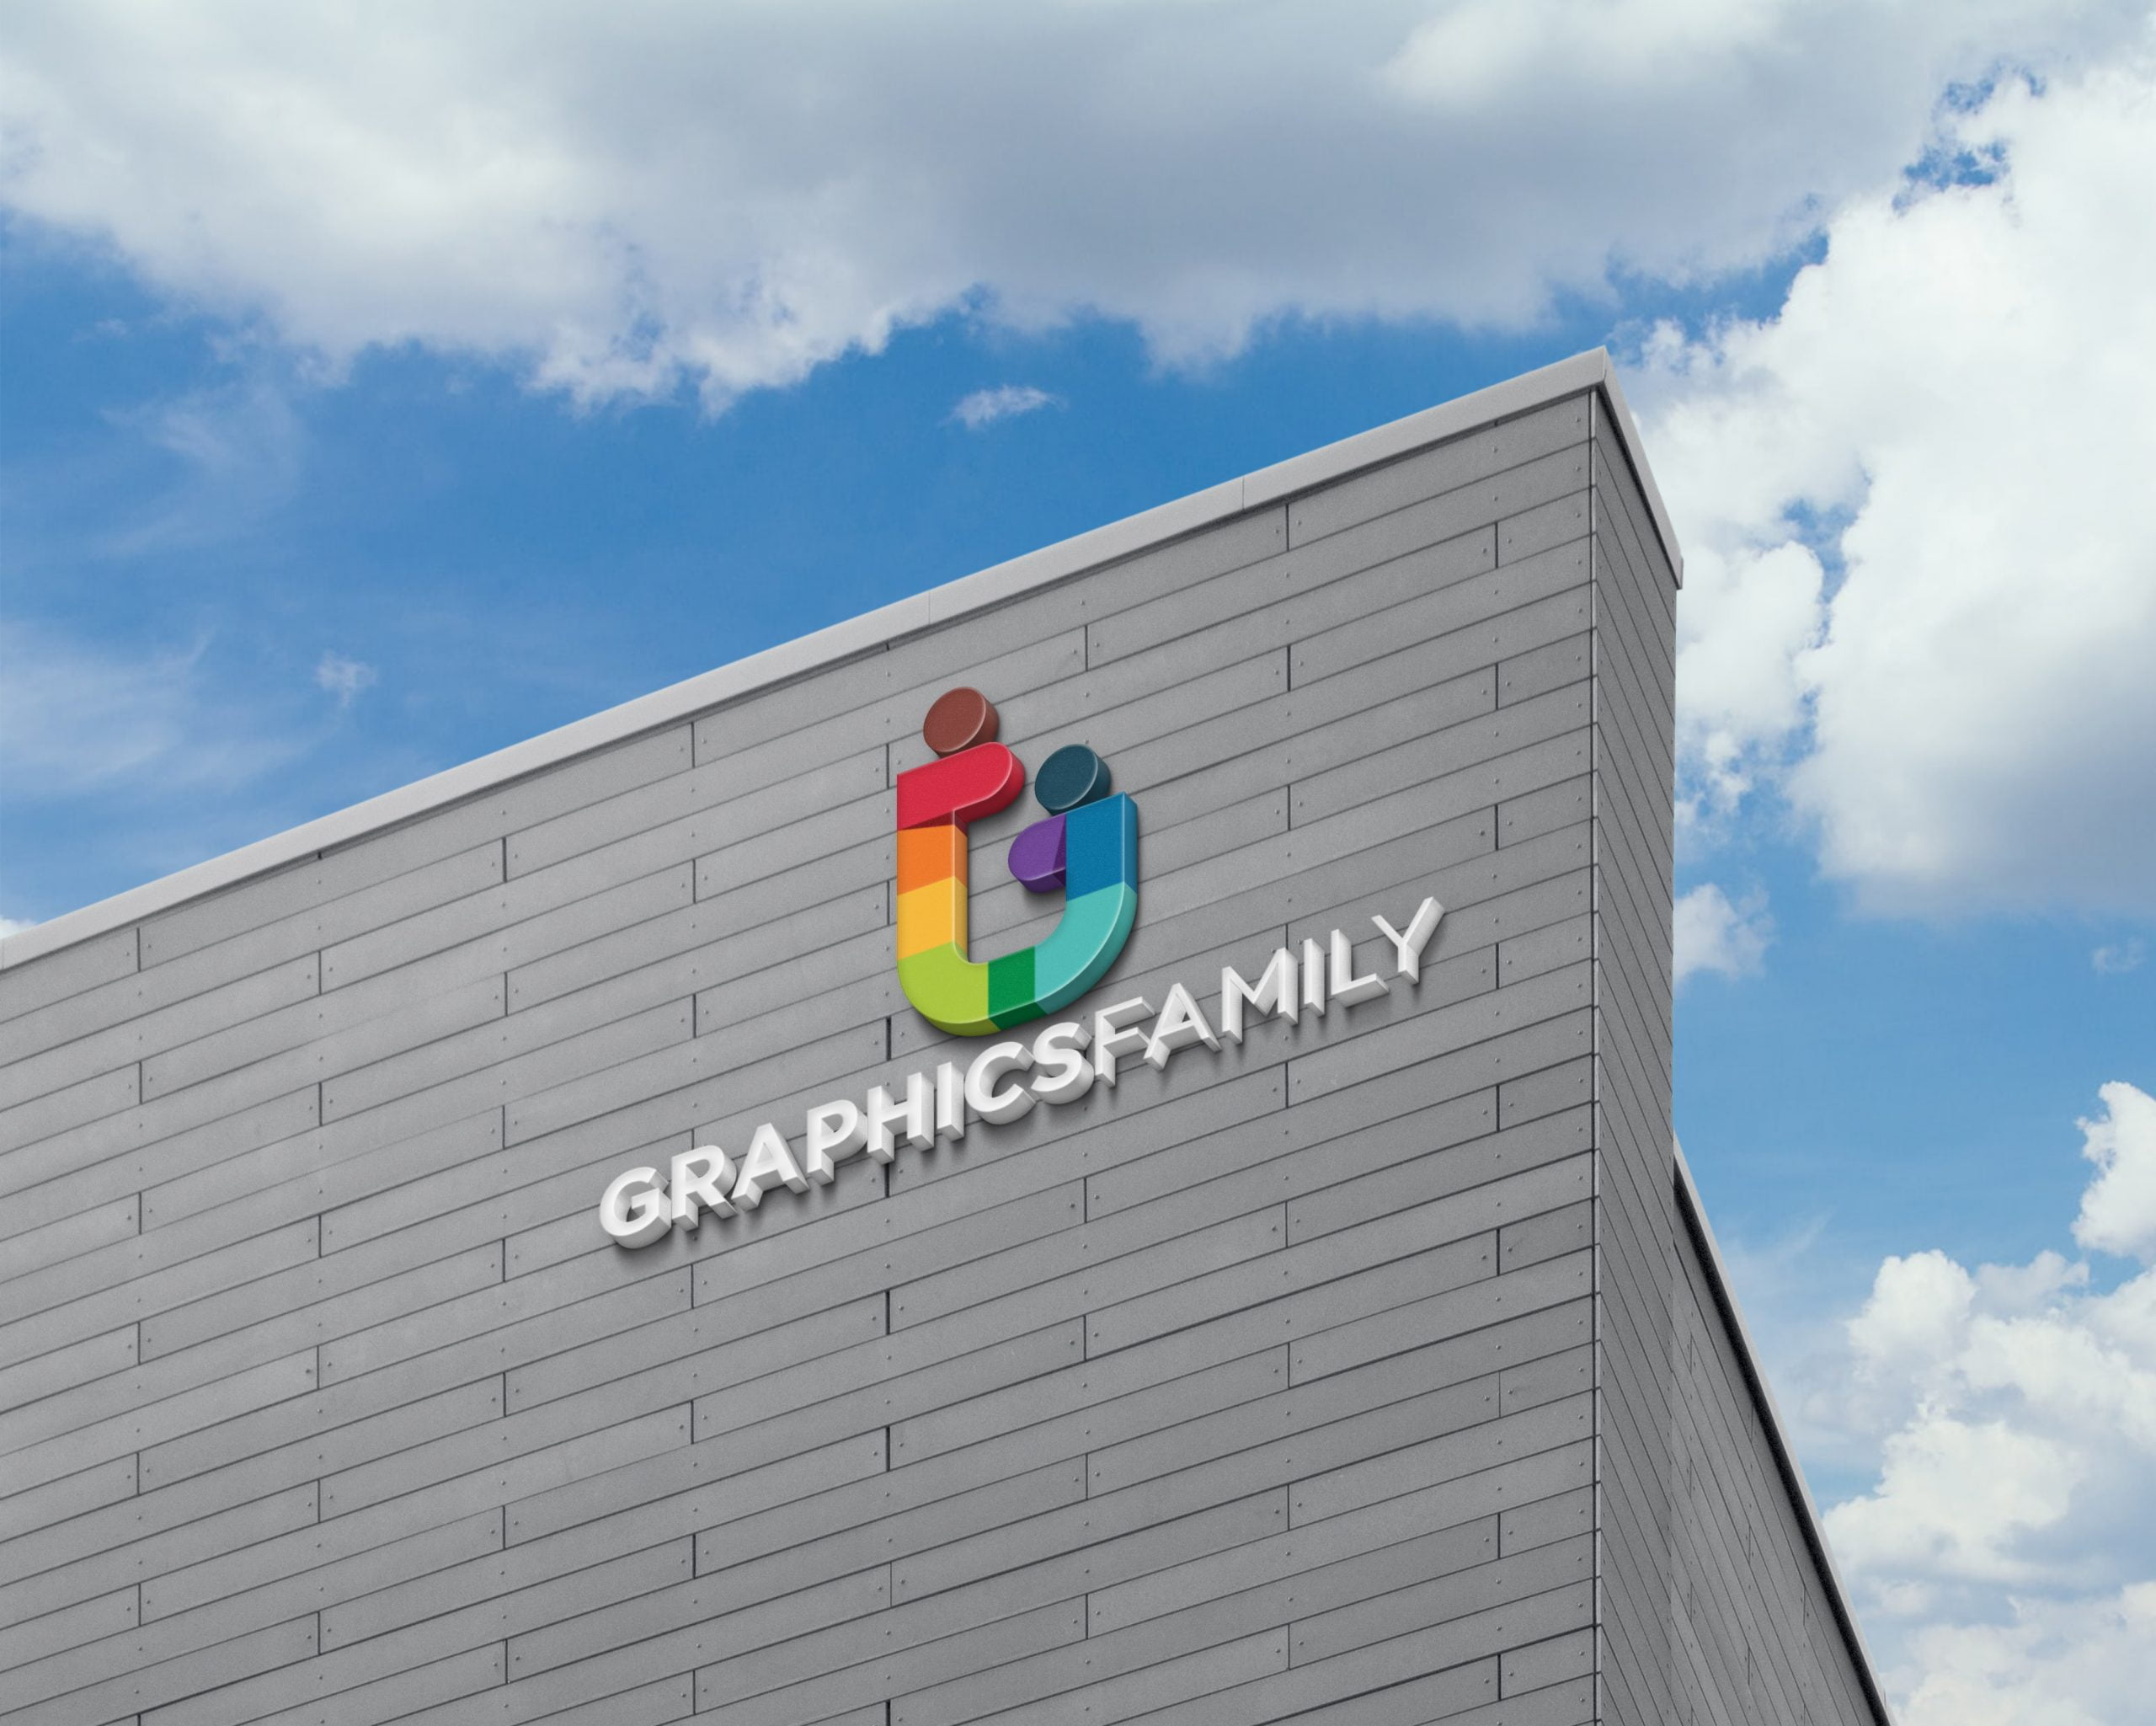 GraphicsFamily-Free-3D-Logo-Sign-on-Building-Facade-Wall-Mock-Up